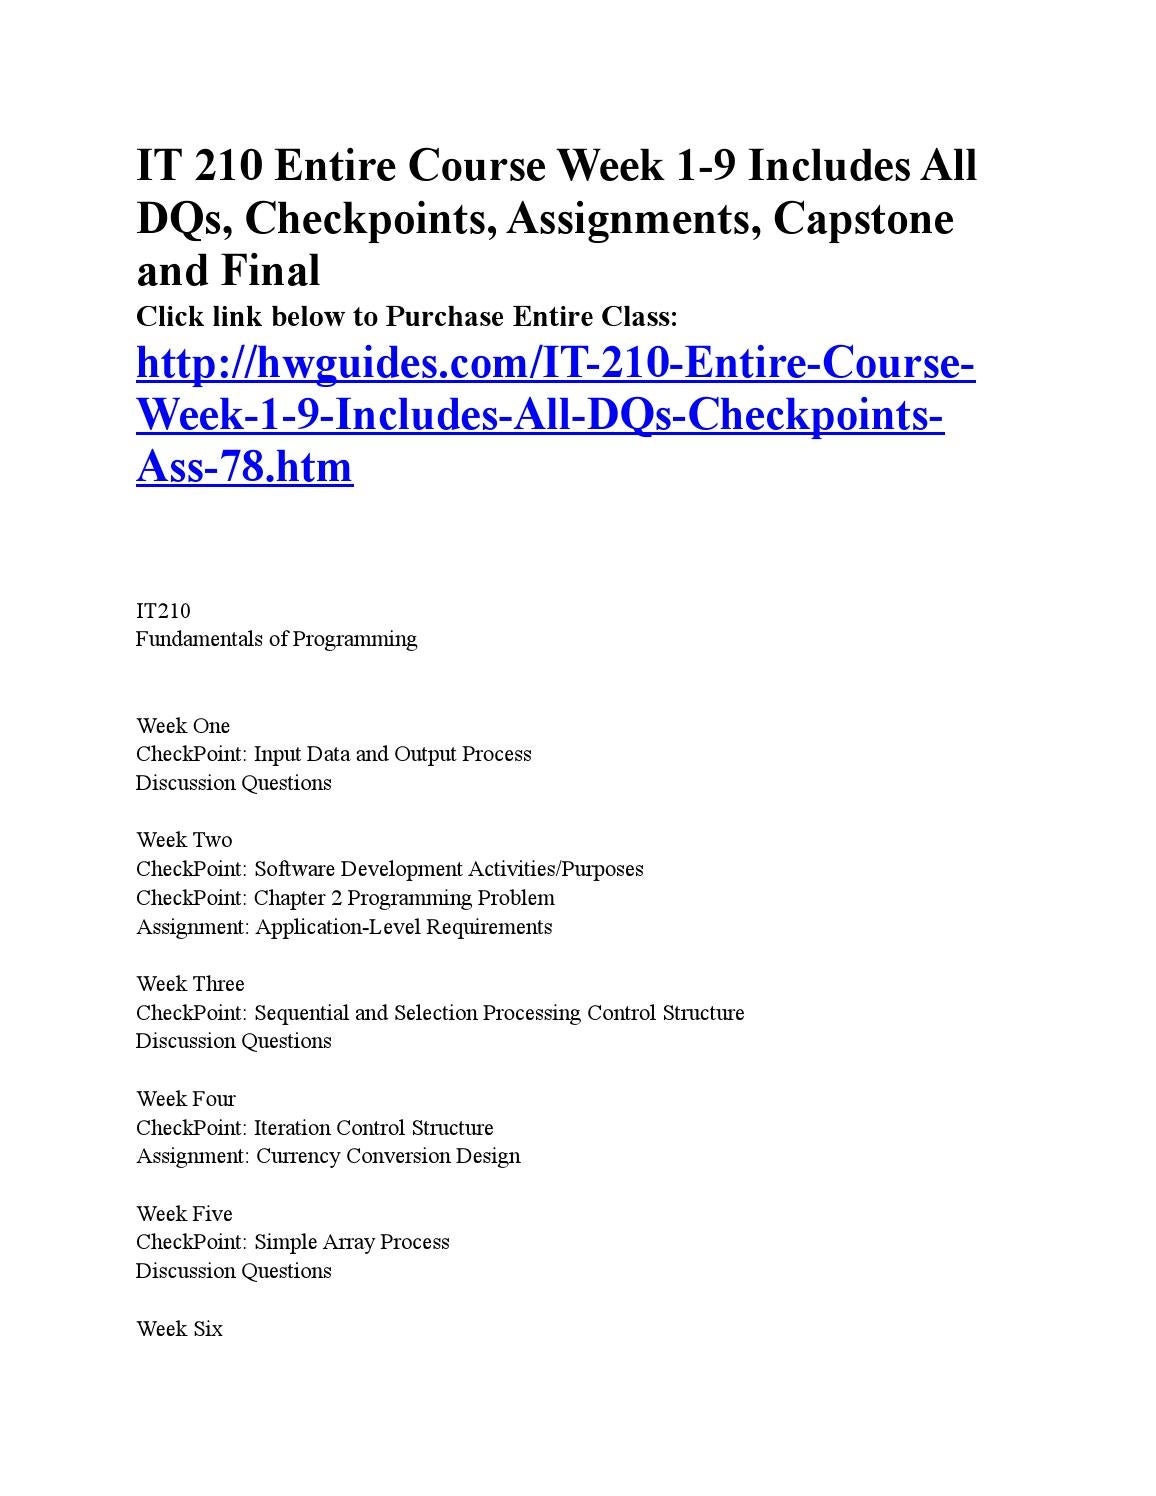 checkpoint software development activities and purposes It 210 entire coursefor more course tutorials visitwwwshoptutorialcomit 210 week 1 checkpoint input data and output processit 210 week 1 dq 1 and dq 2it 210 week 2 checkpoint software development activities purposesit 210 week 2 checkpoint chapter 2 programming problemit 210 week 2 assignment.